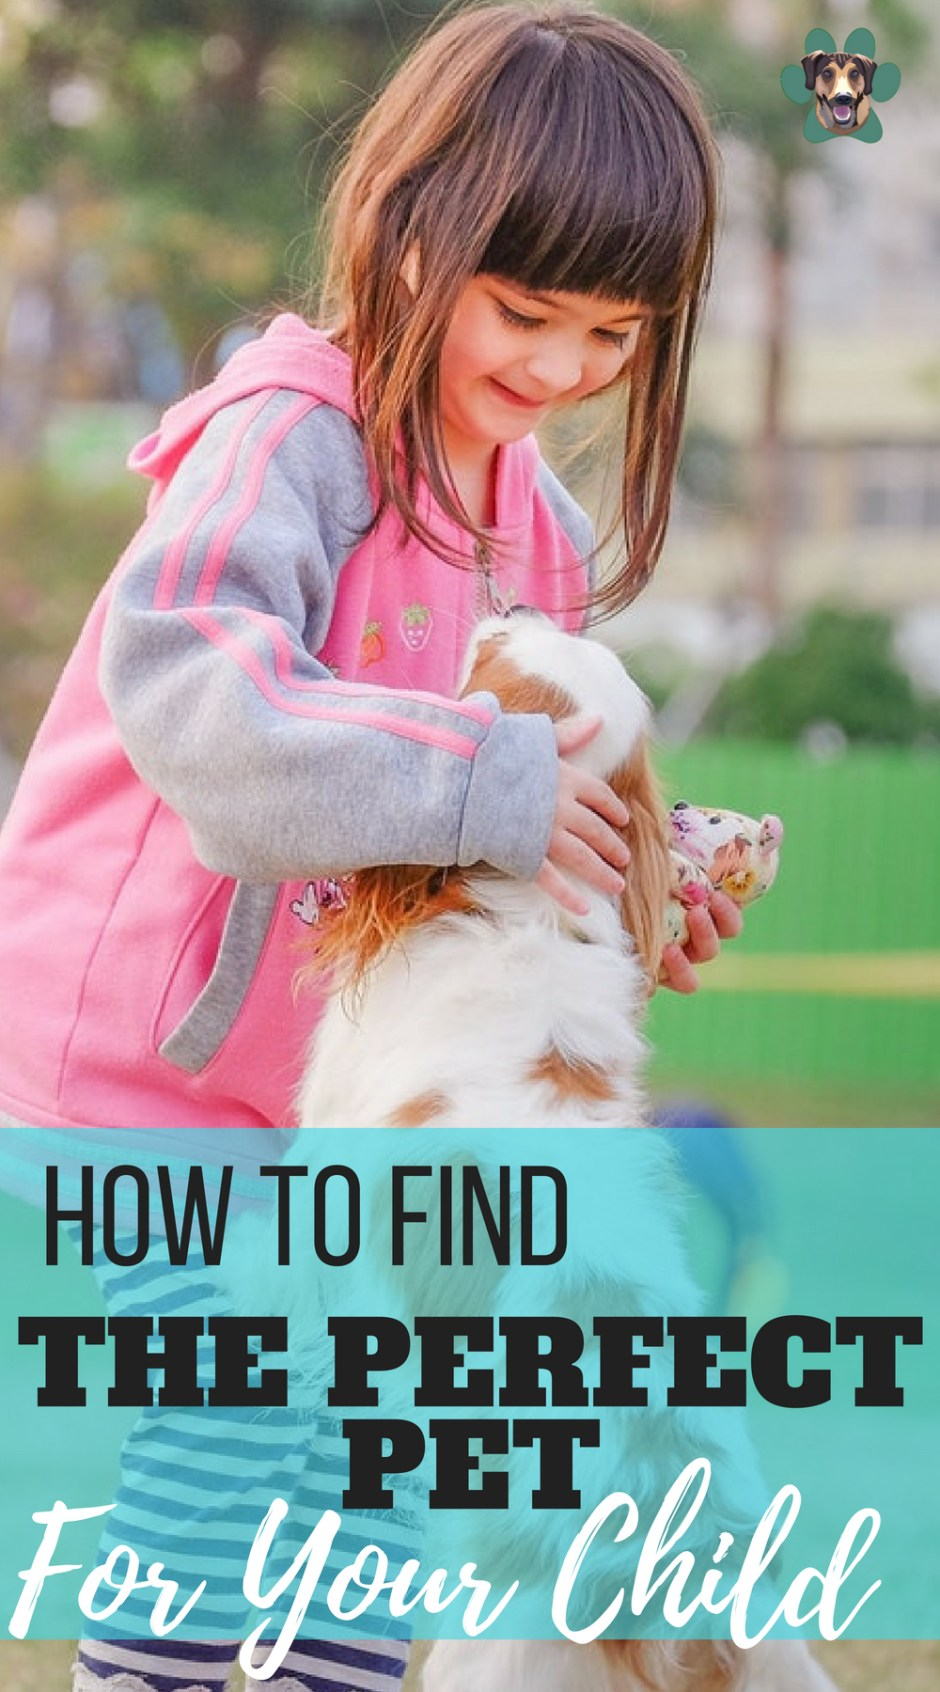 No doubt, bringing a pet home for your child can be a super exciting experience for them. But deciding to bring home a pet is a big one that you should not take lightly. Pets will help your child will responsibility and friendship. So, how do you make the right decision on choosing a pet for your child?